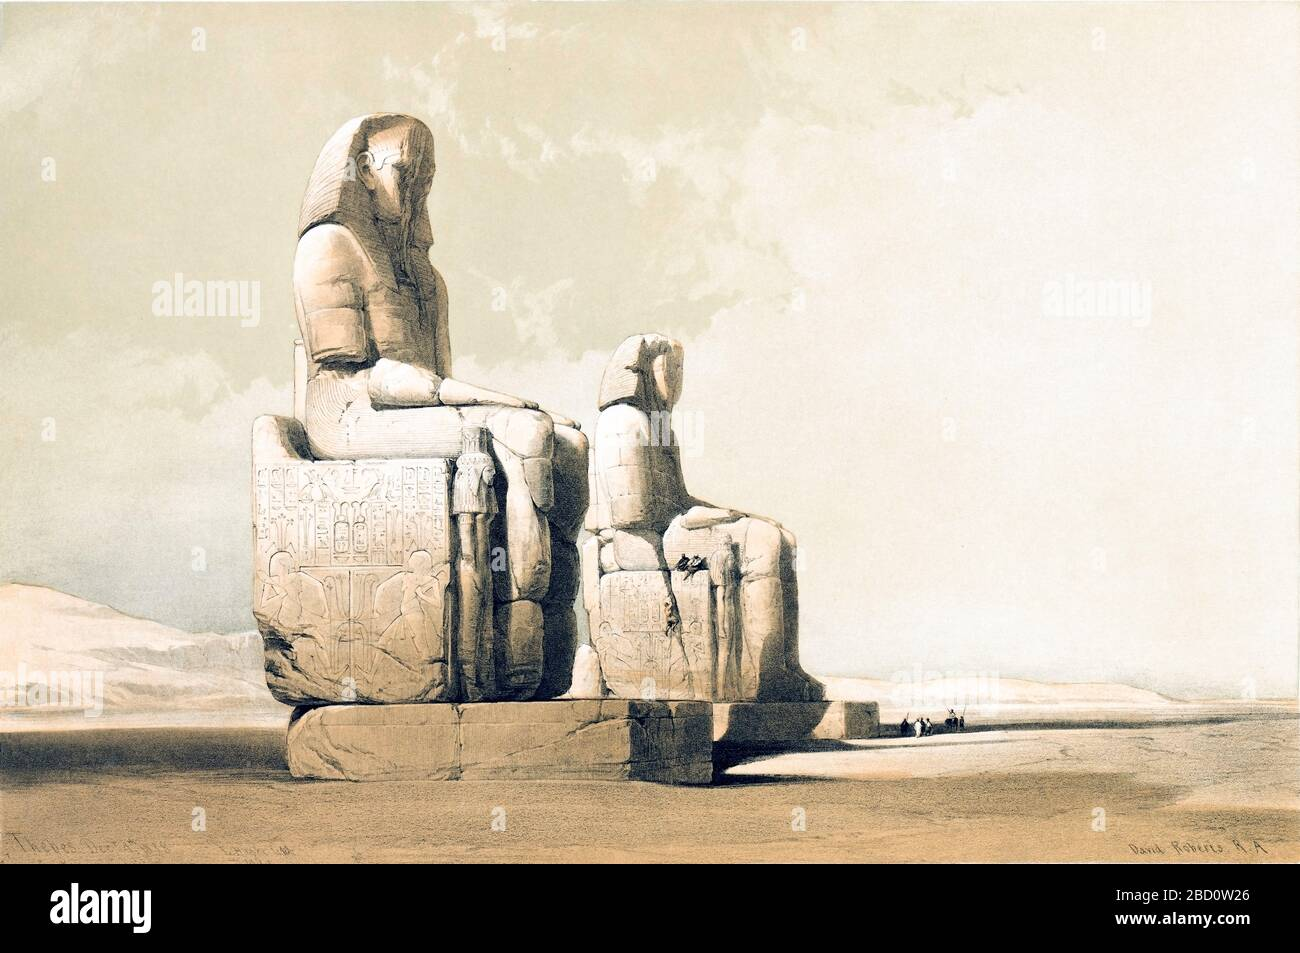 The colossal statues of Amenophis III at his mortuary temple in Thebes. Color lithograph by David Roberts, 1846. From Egypt and Nubia, Volume I: Thebes, 1846. Louis Haghe (British, 1806-1885), F.G.Moon, 20 Threadneedle Street, London, after David Roberts (British, 1796-1864). Color lithograph Stock Photo